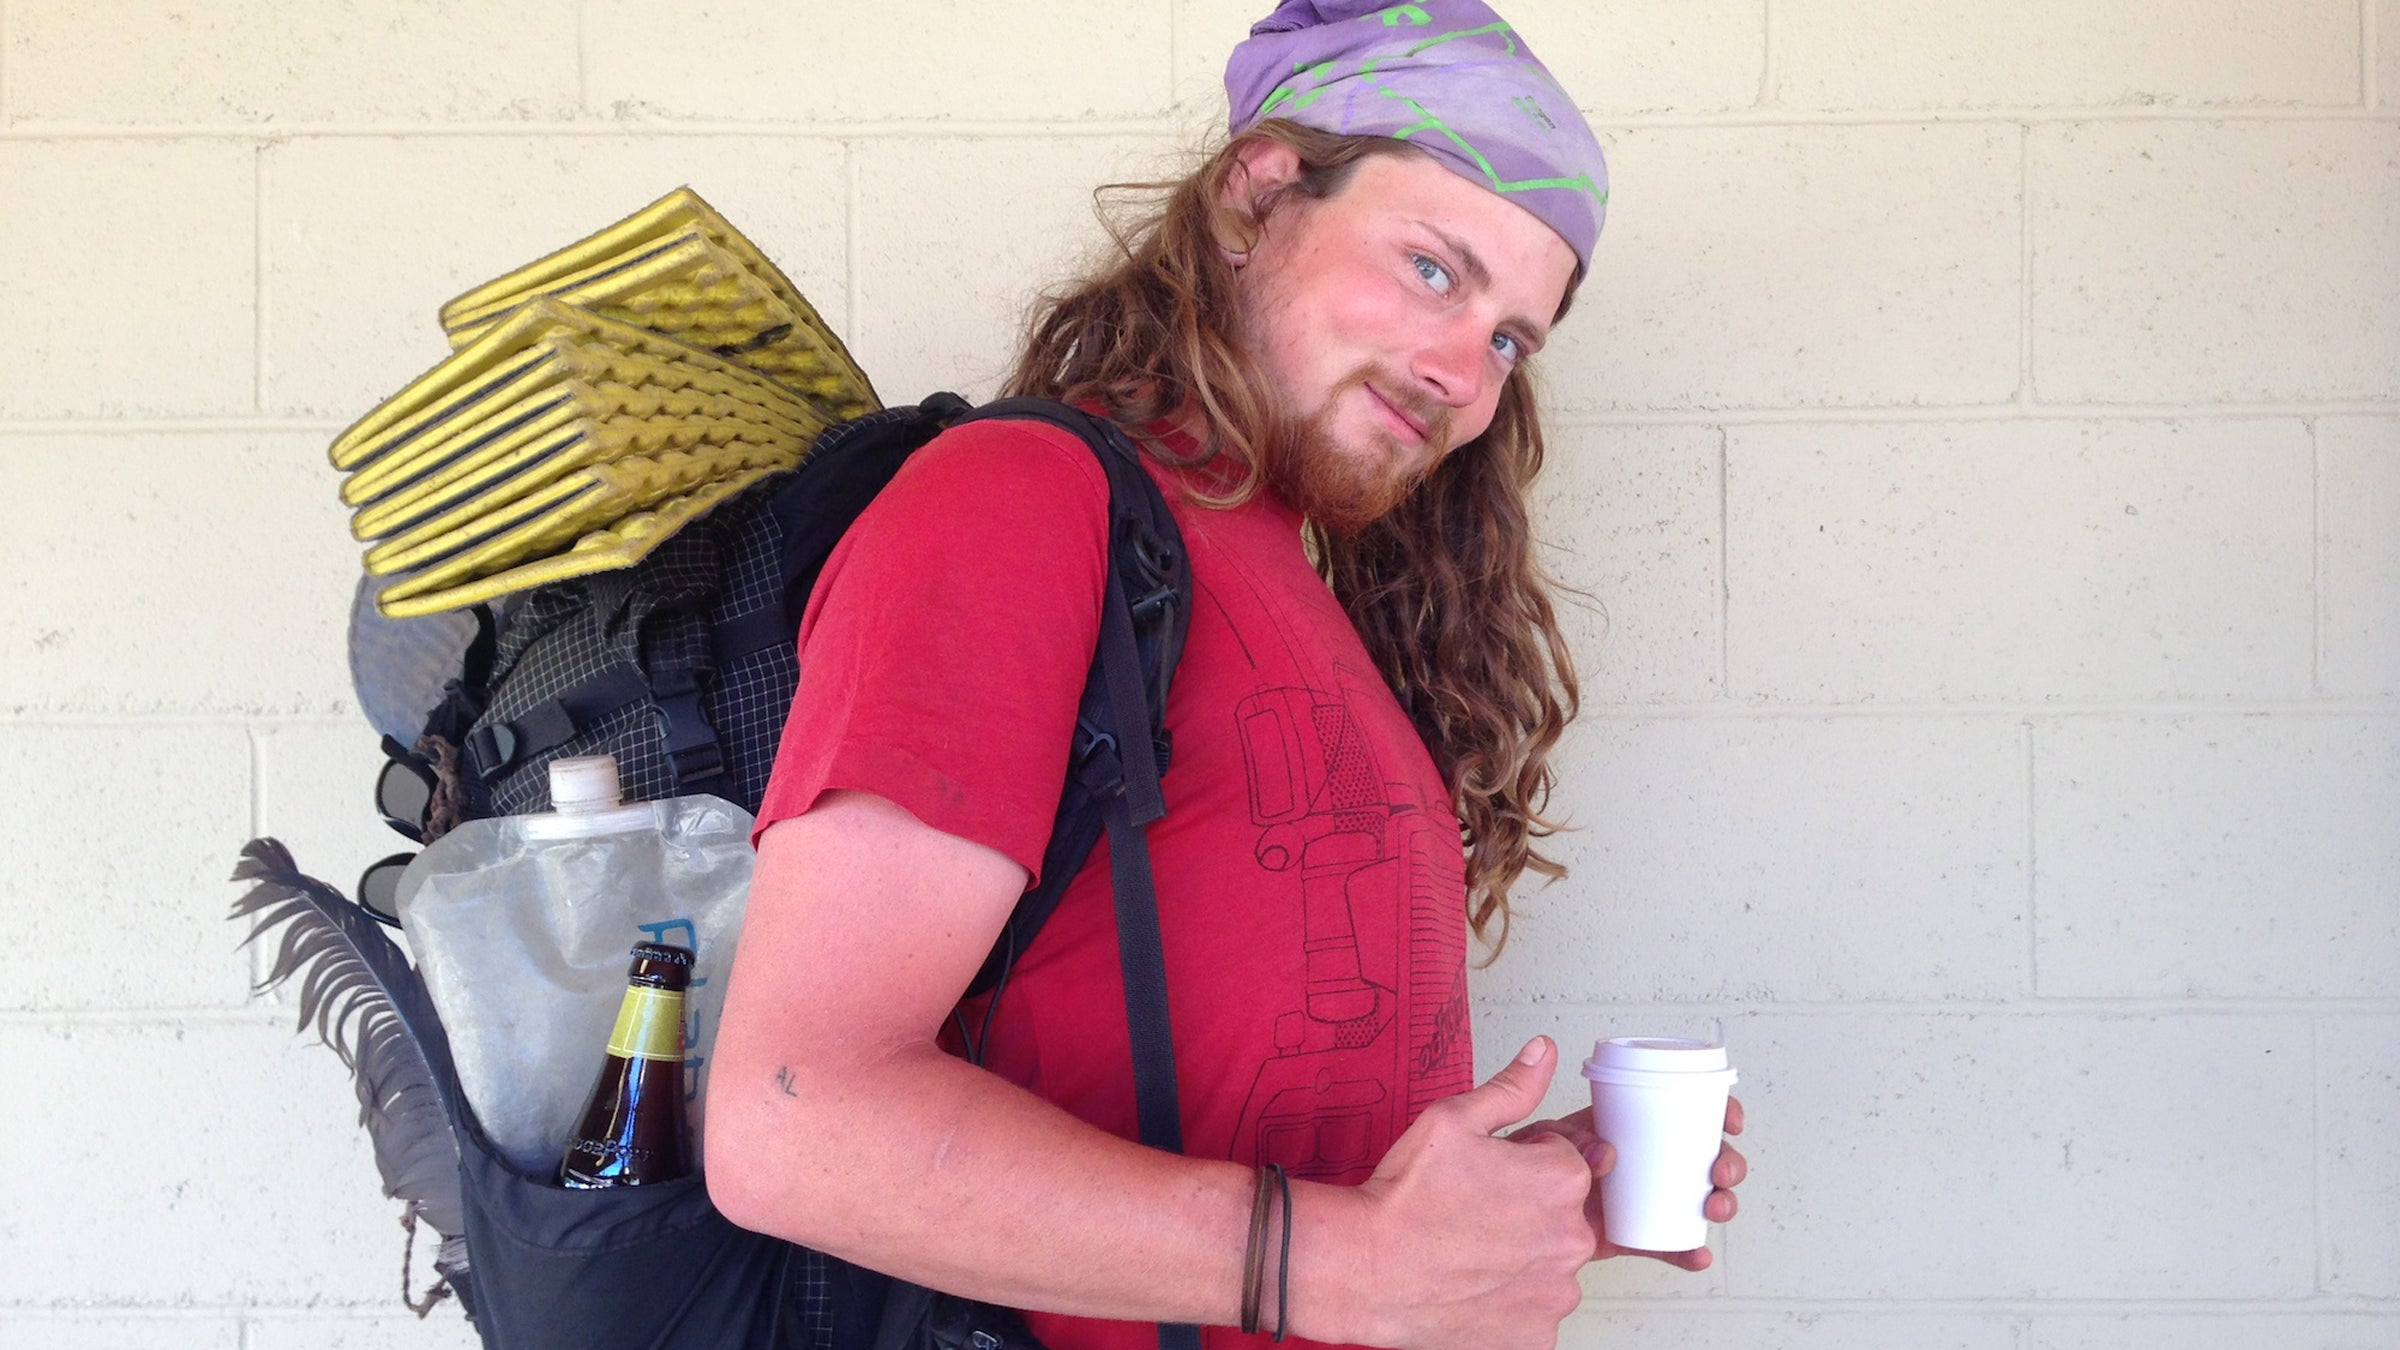 """Ethan Bisset, 25 Trail Name: Homeboy Salt Lake City, Utah """"I've changed on this trail. I've learned that we should put all our trust in who we know and not what we got. I'll go home with the trail in my heart. I'll go home with dirt in my lungs and my hair and under my fingernails. Be friends. Don't burn bridges and try not to pee in someone's backyard!"""""""